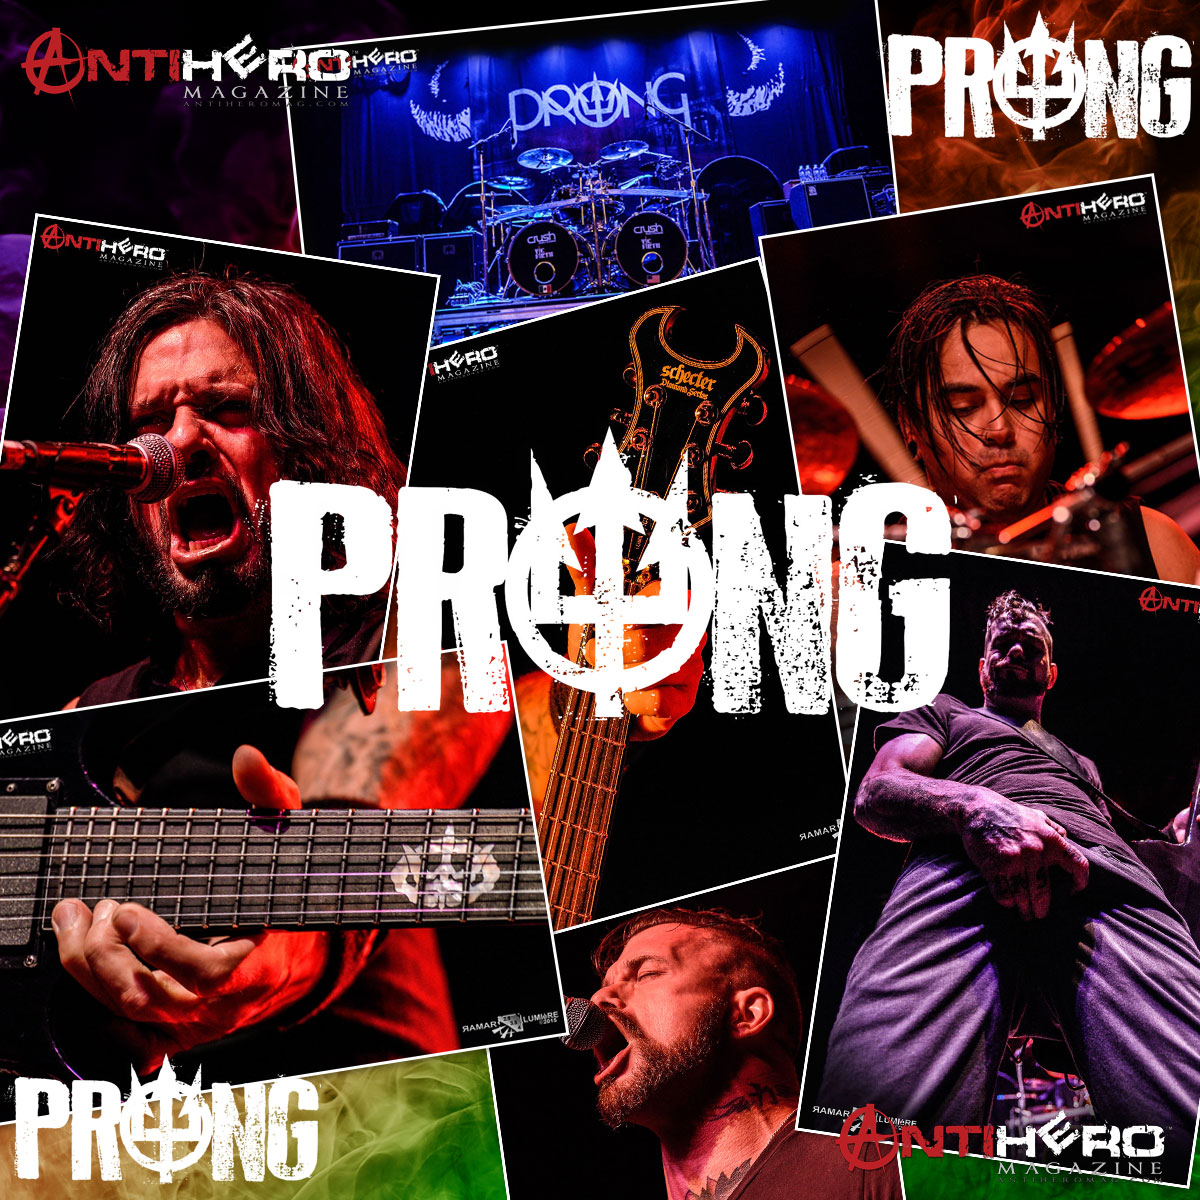 prong-photo-cover